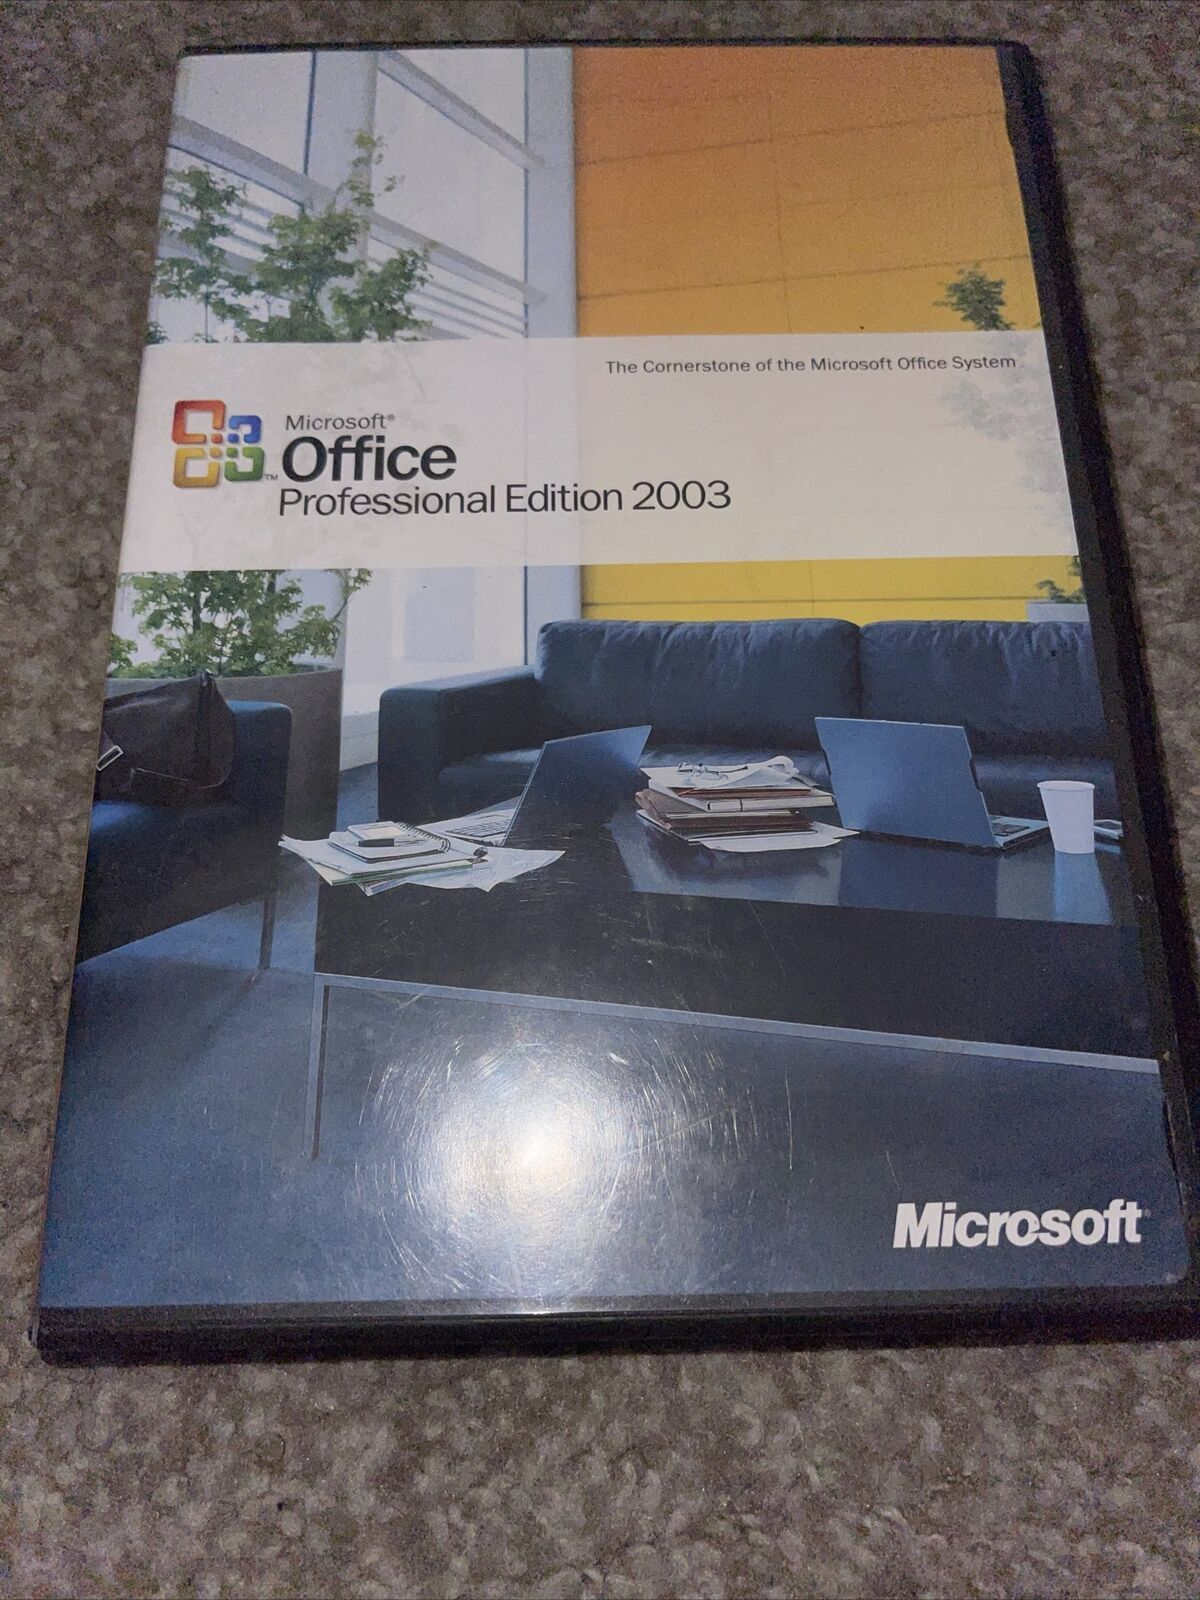 Microsoft  Office Professional Edition 2003 with orig. product/license key - $43.46